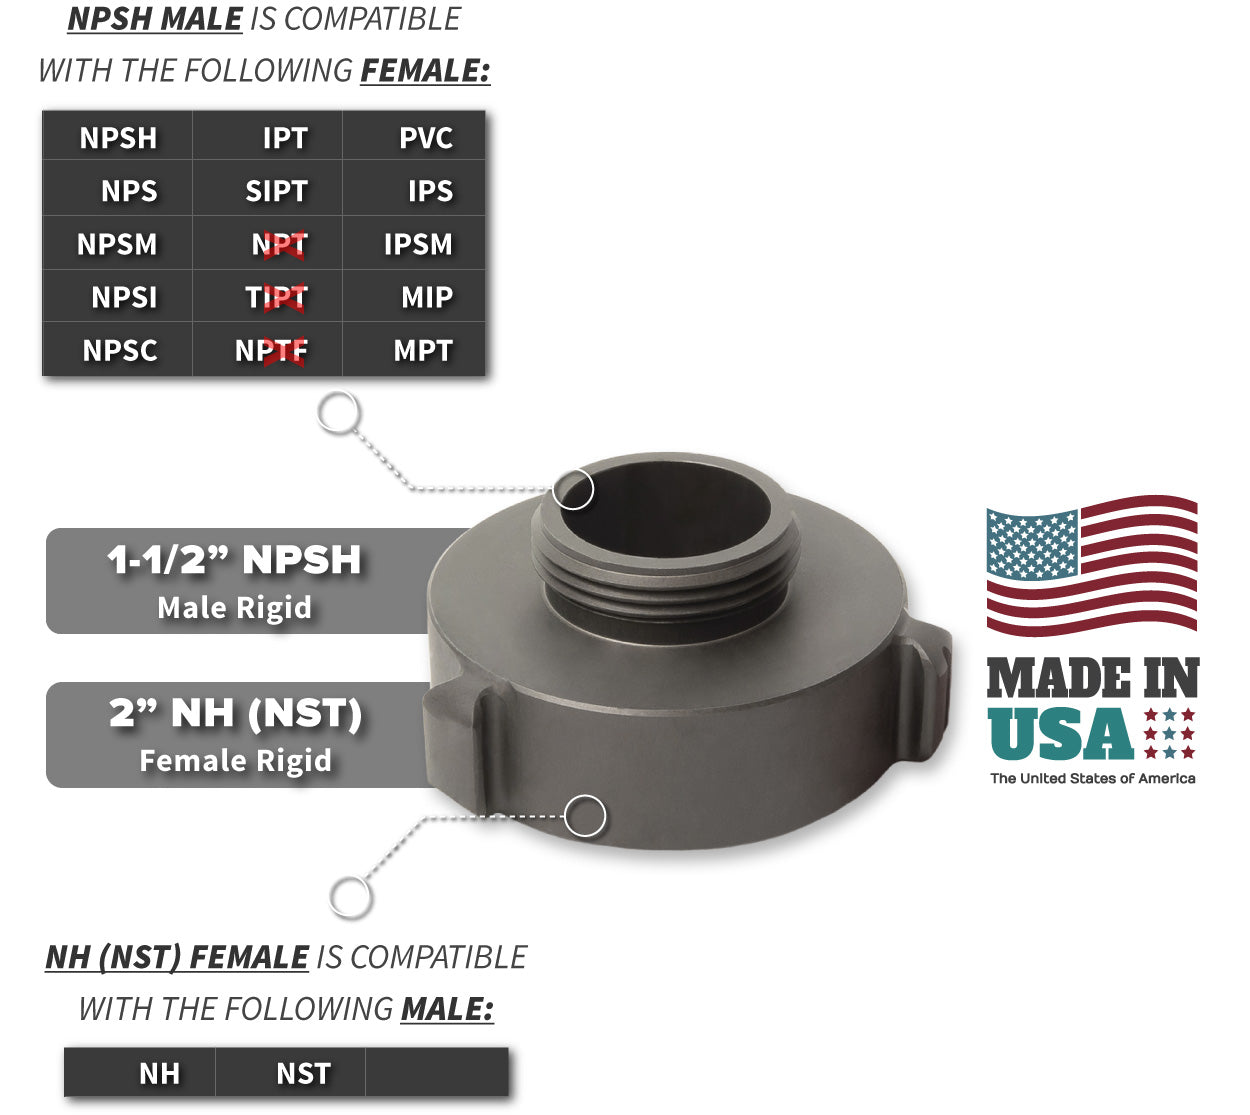 2 Inch NH-NST Female x 1.5 Inch NPSH Male Compatibility Thread Chart